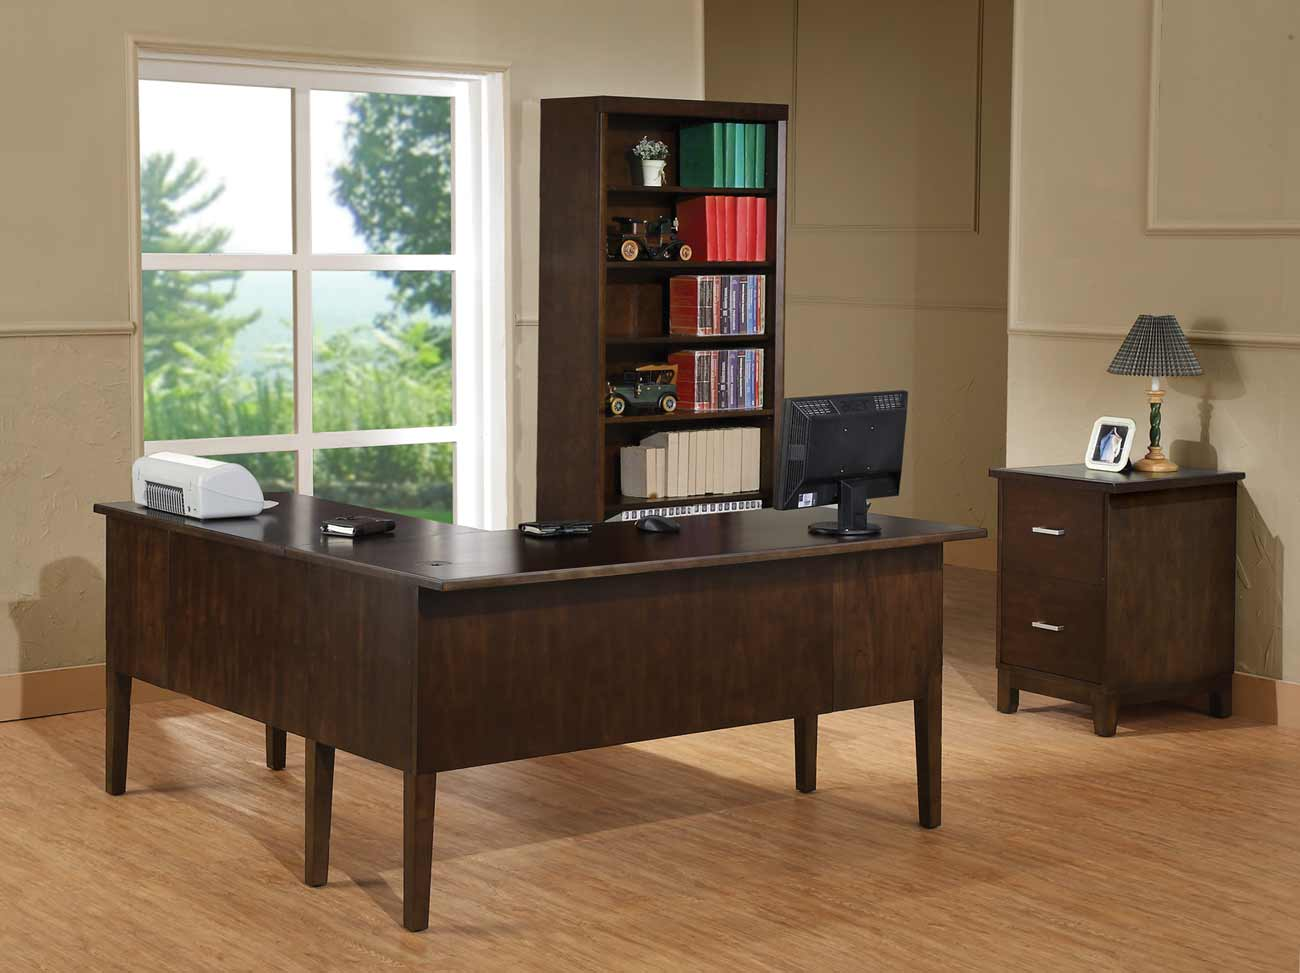 Koncept Chocolate L Shaped Table